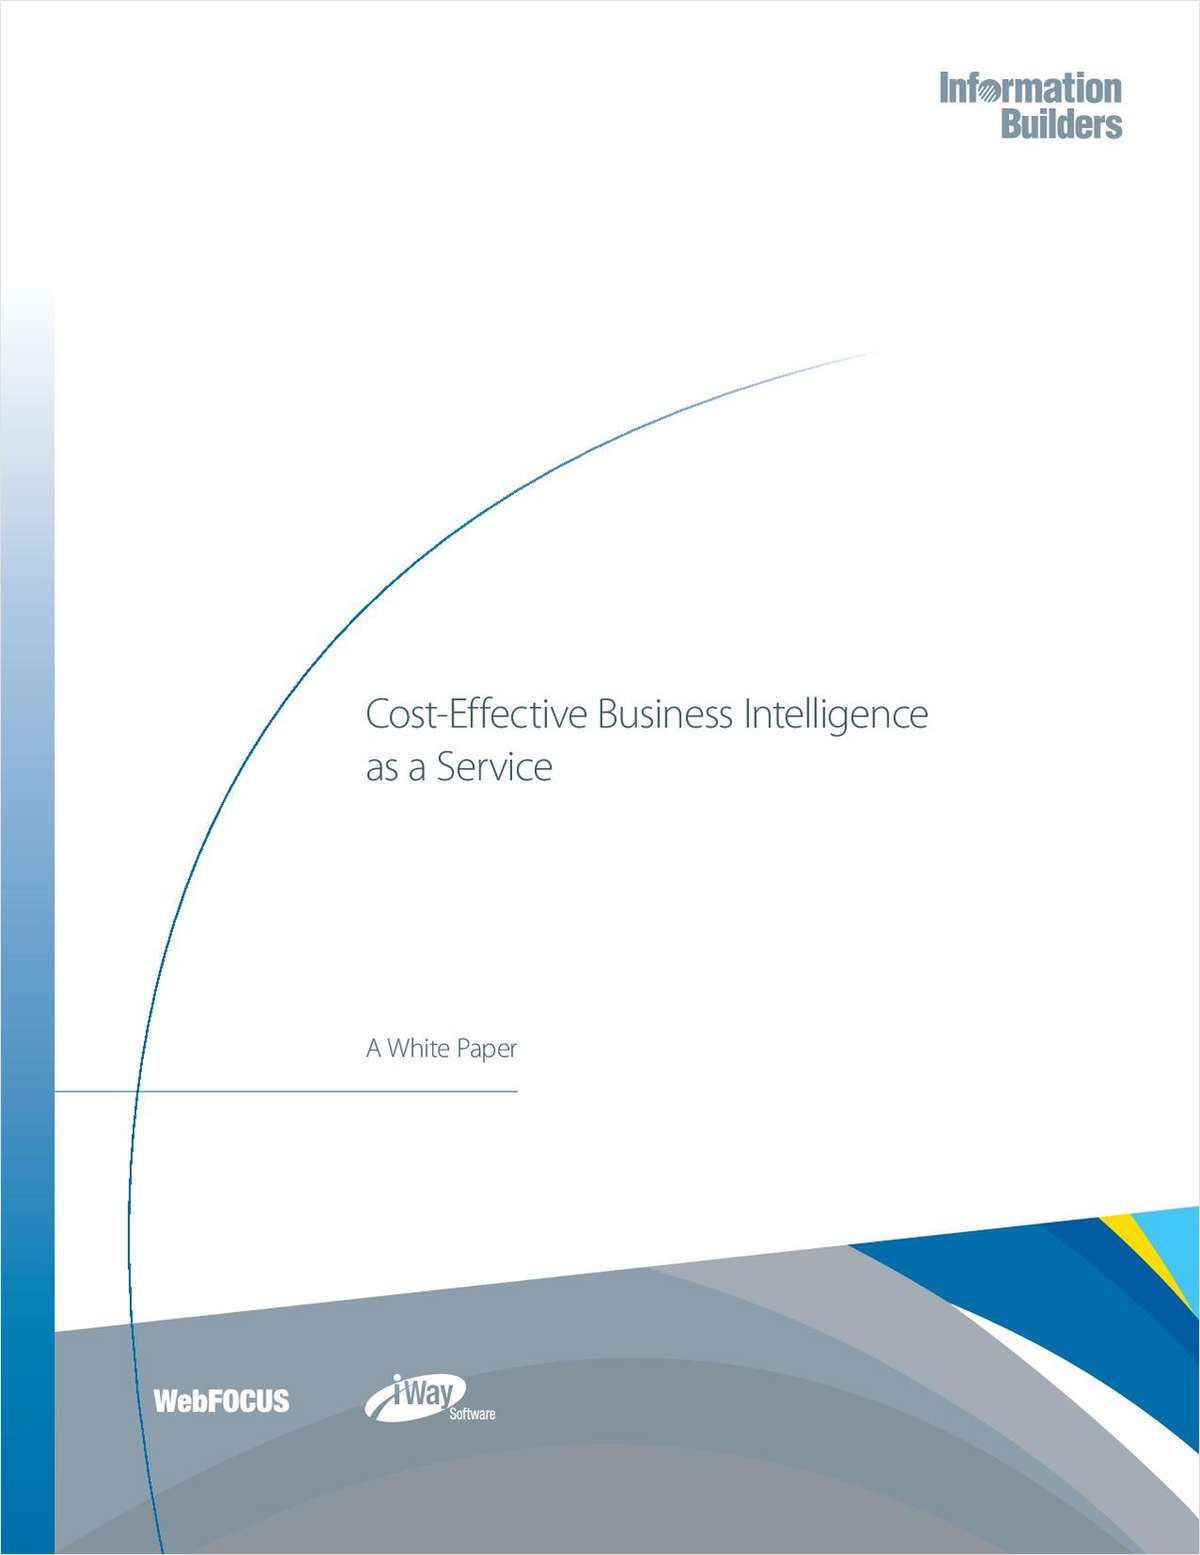 Cost-Effective Business Intelligence as a Service